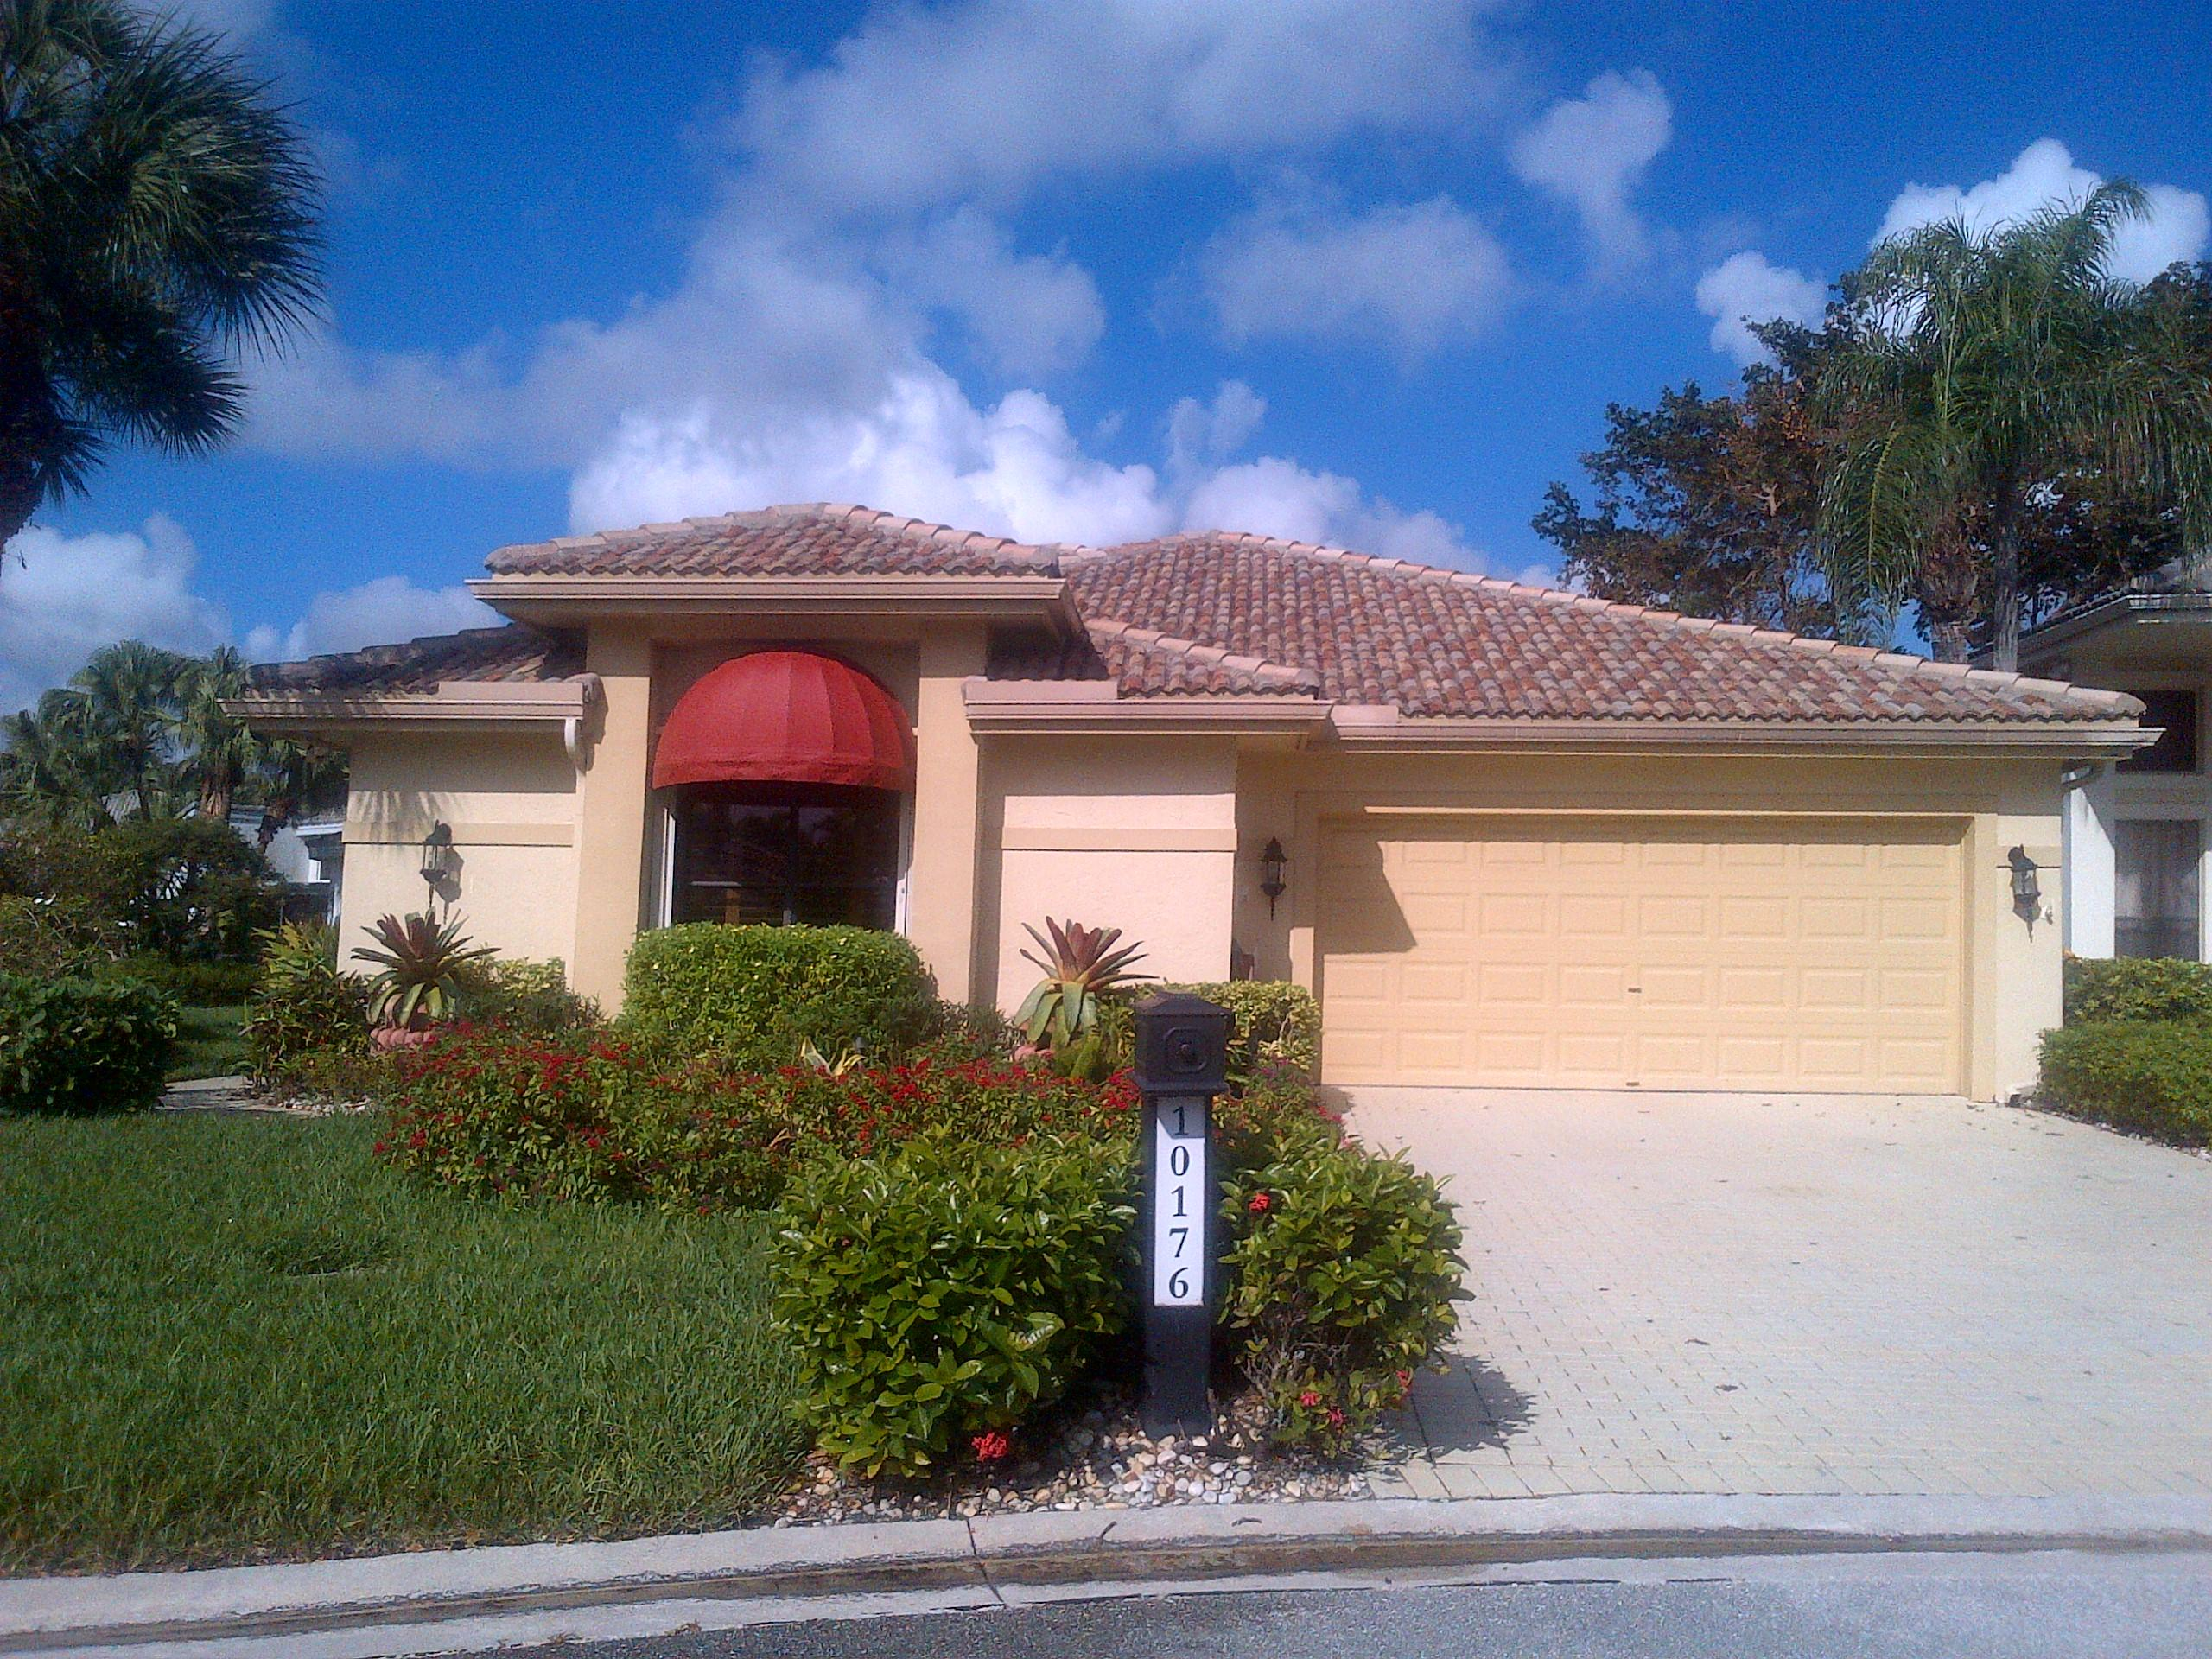 Home for sale in Stonebridge Country Club Boca Raton Florida